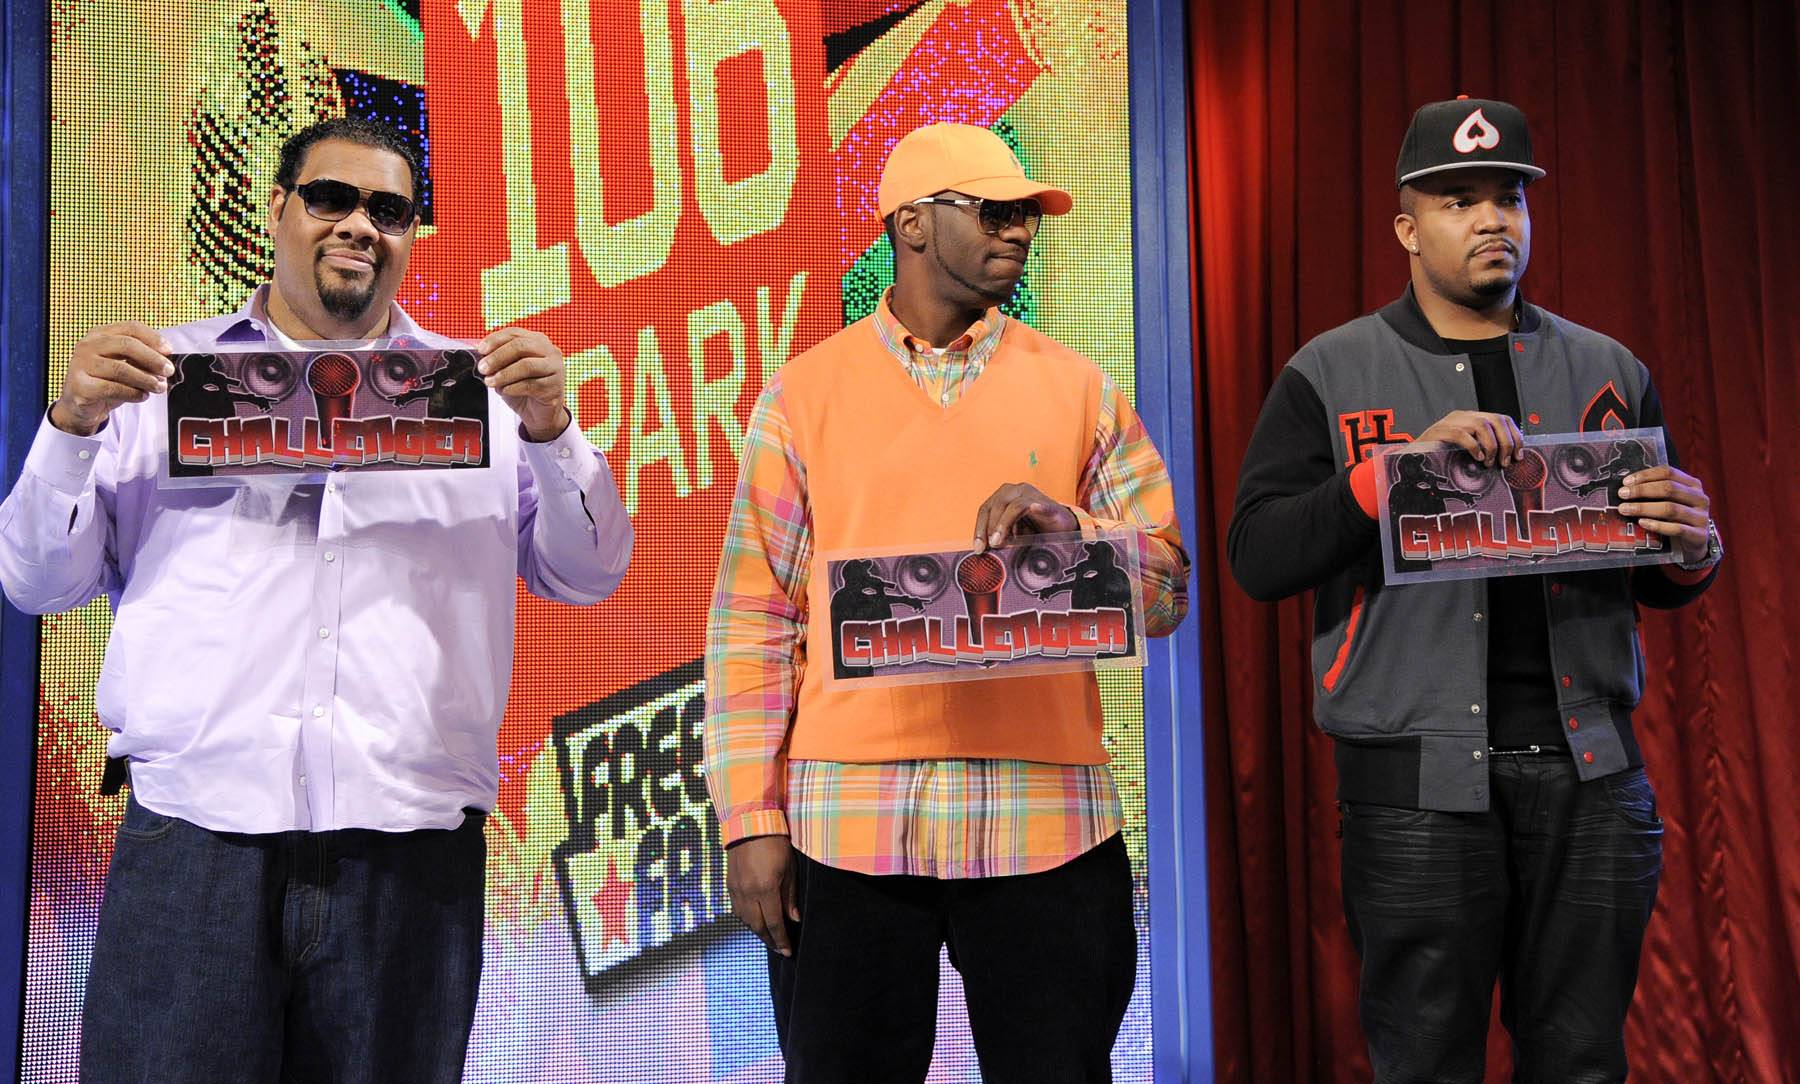 Give It to J. Dose - Freestyle Friday judges Fatman Scoop, Young Dro and DJ Boof decide in favor of J. Dose at 106 & Park, January 27, 2012. (Photo: John Ricard / BET)